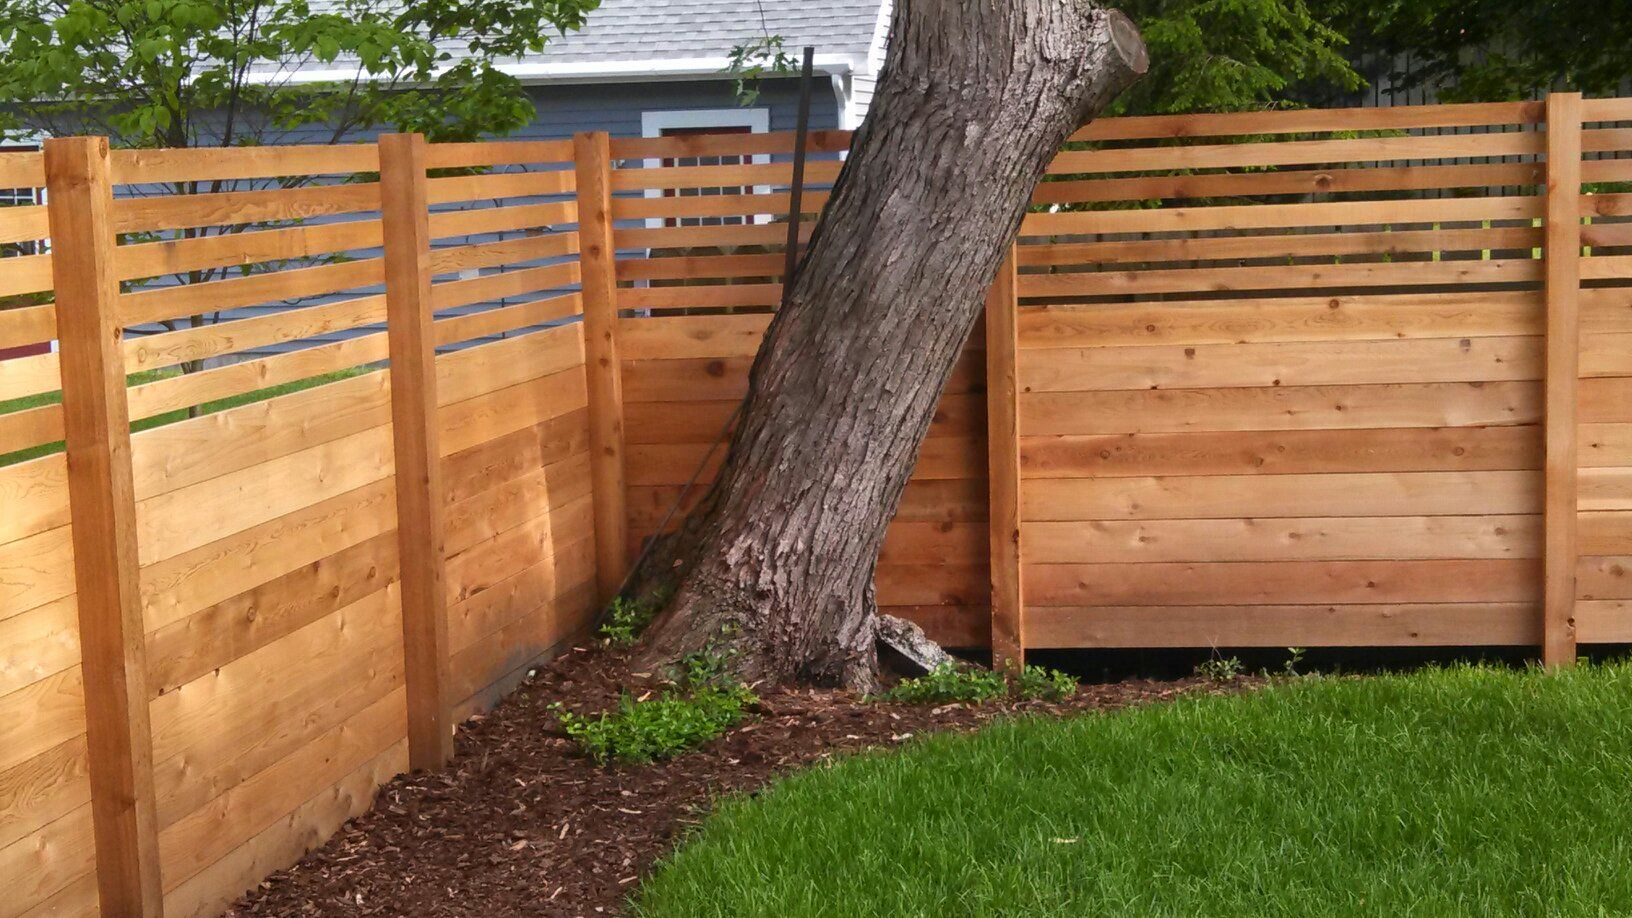 Need Ideas For A Wood Fence Check Out Our Beautiful Gallery Of And Designs Including Privacy Security Decorative Fences More